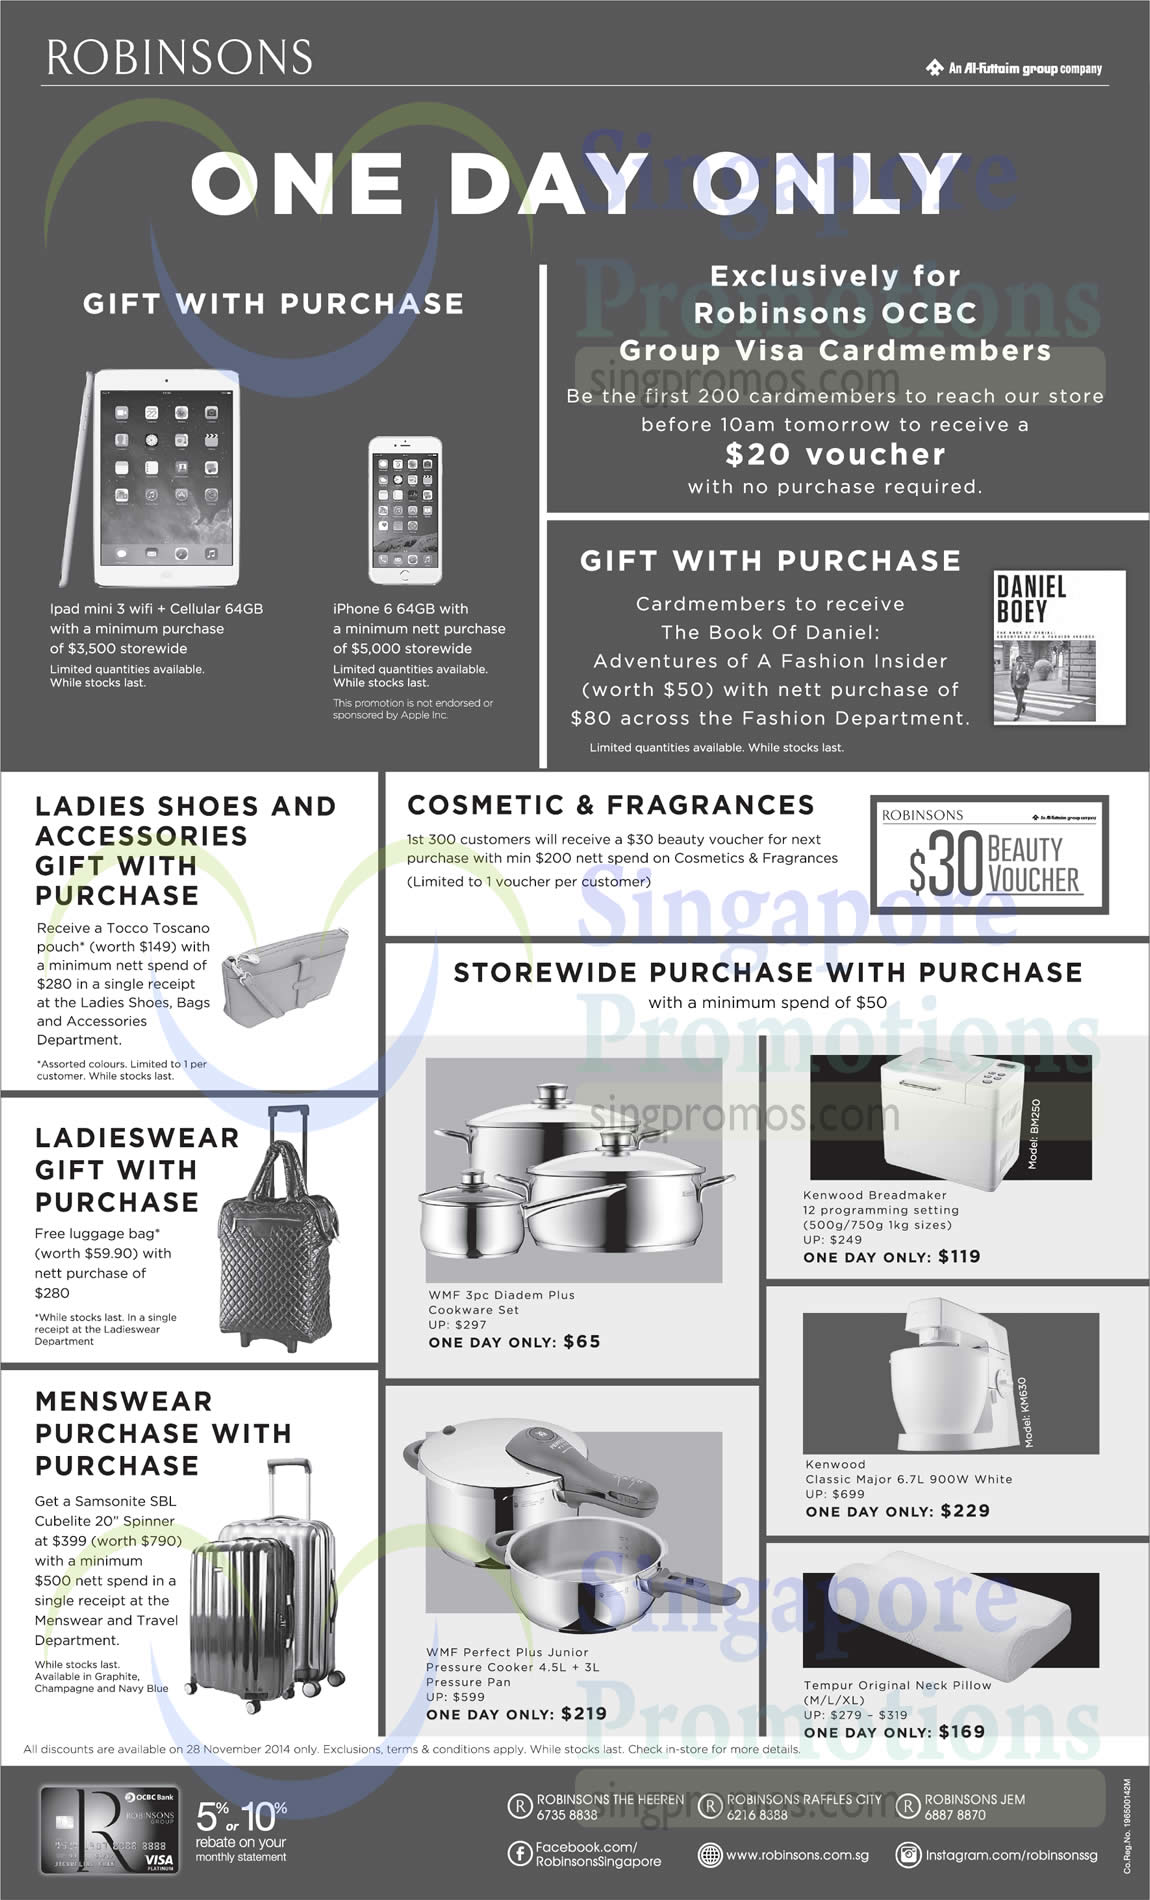 gift with purchase ladieswear gift menswear gift purchase with purchase wmf kenwood tempur. Black Bedroom Furniture Sets. Home Design Ideas